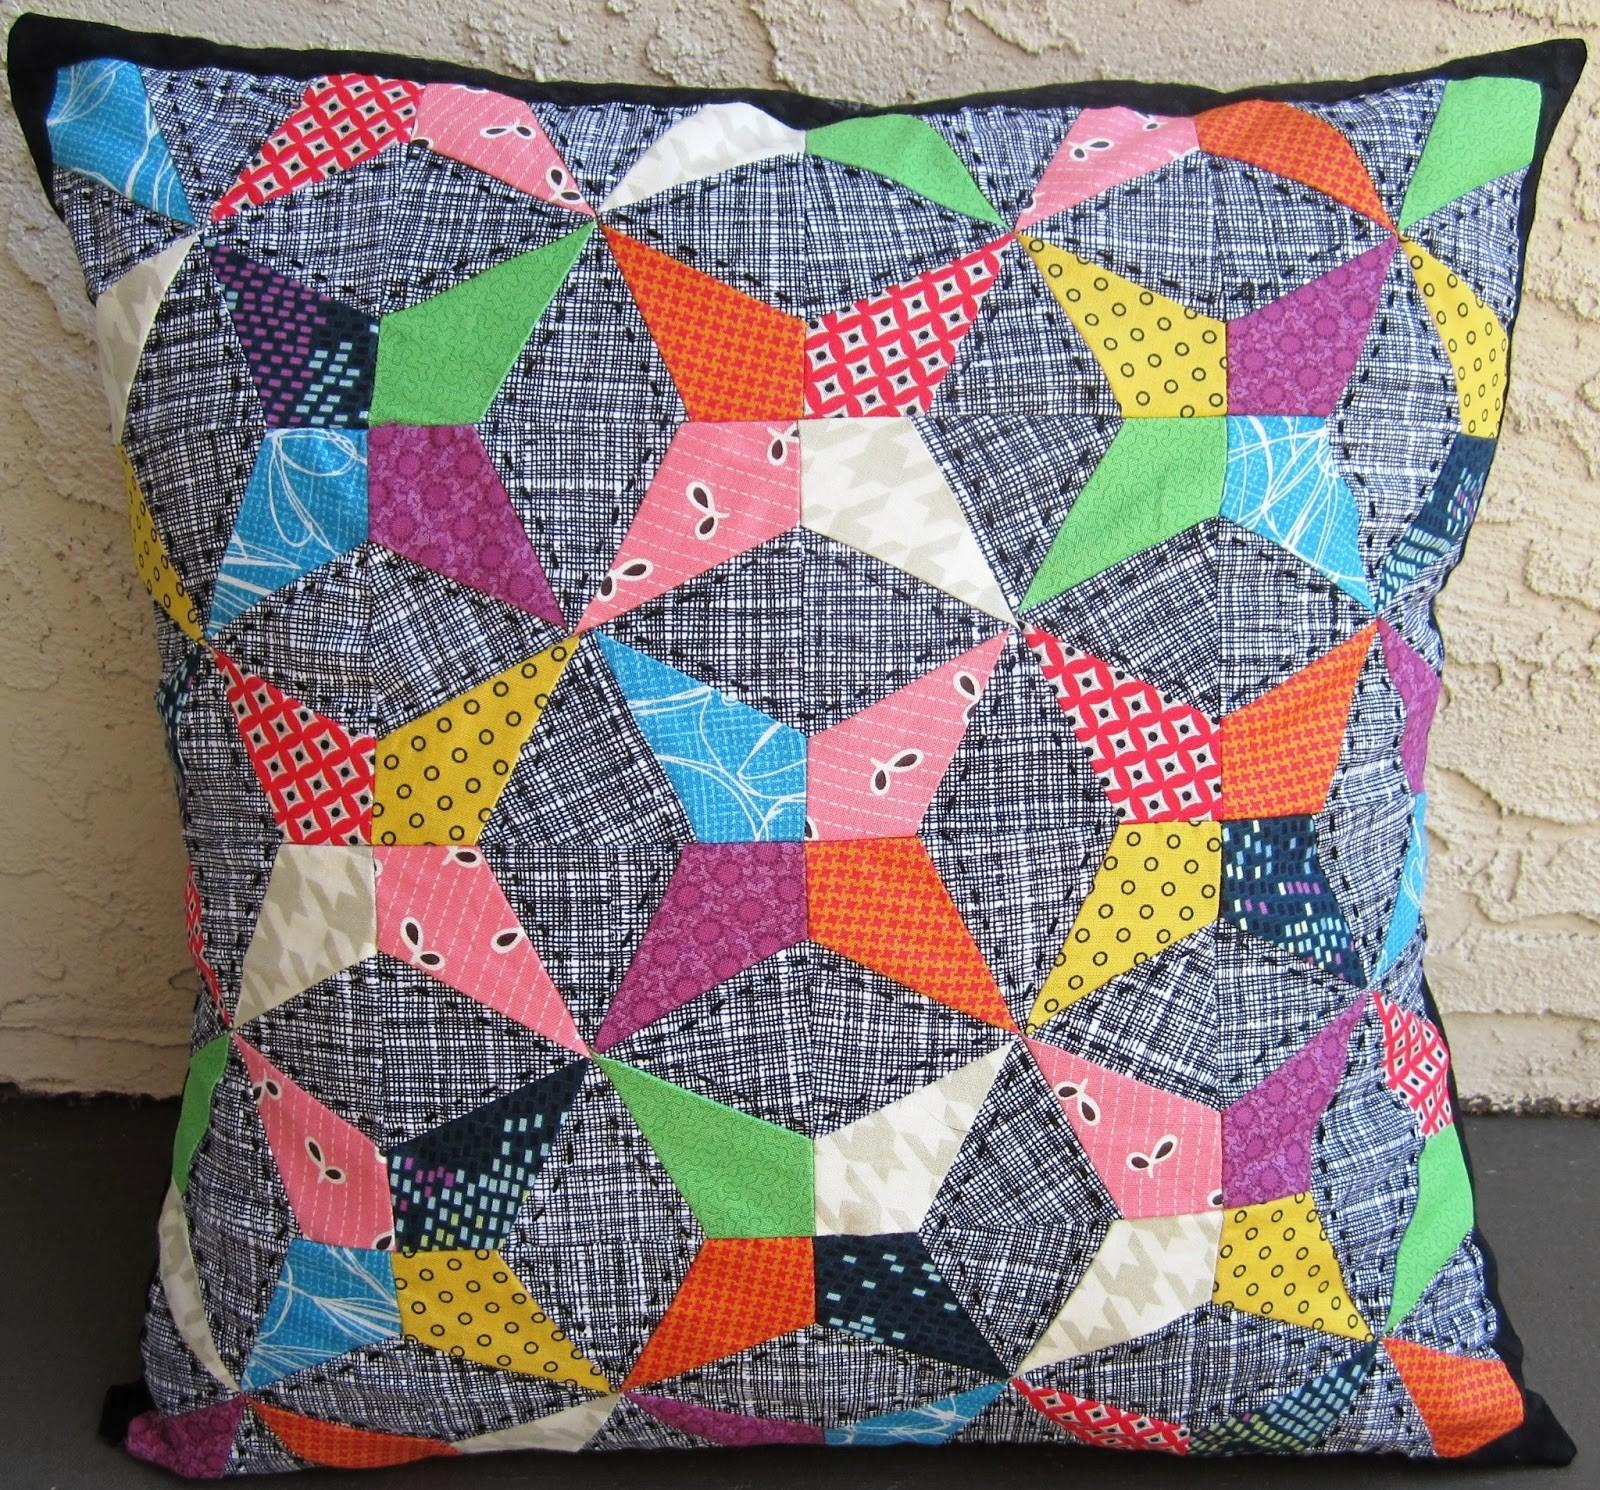 Quarter Incher Kaleidoscope Pillow 100th Post Giveaway